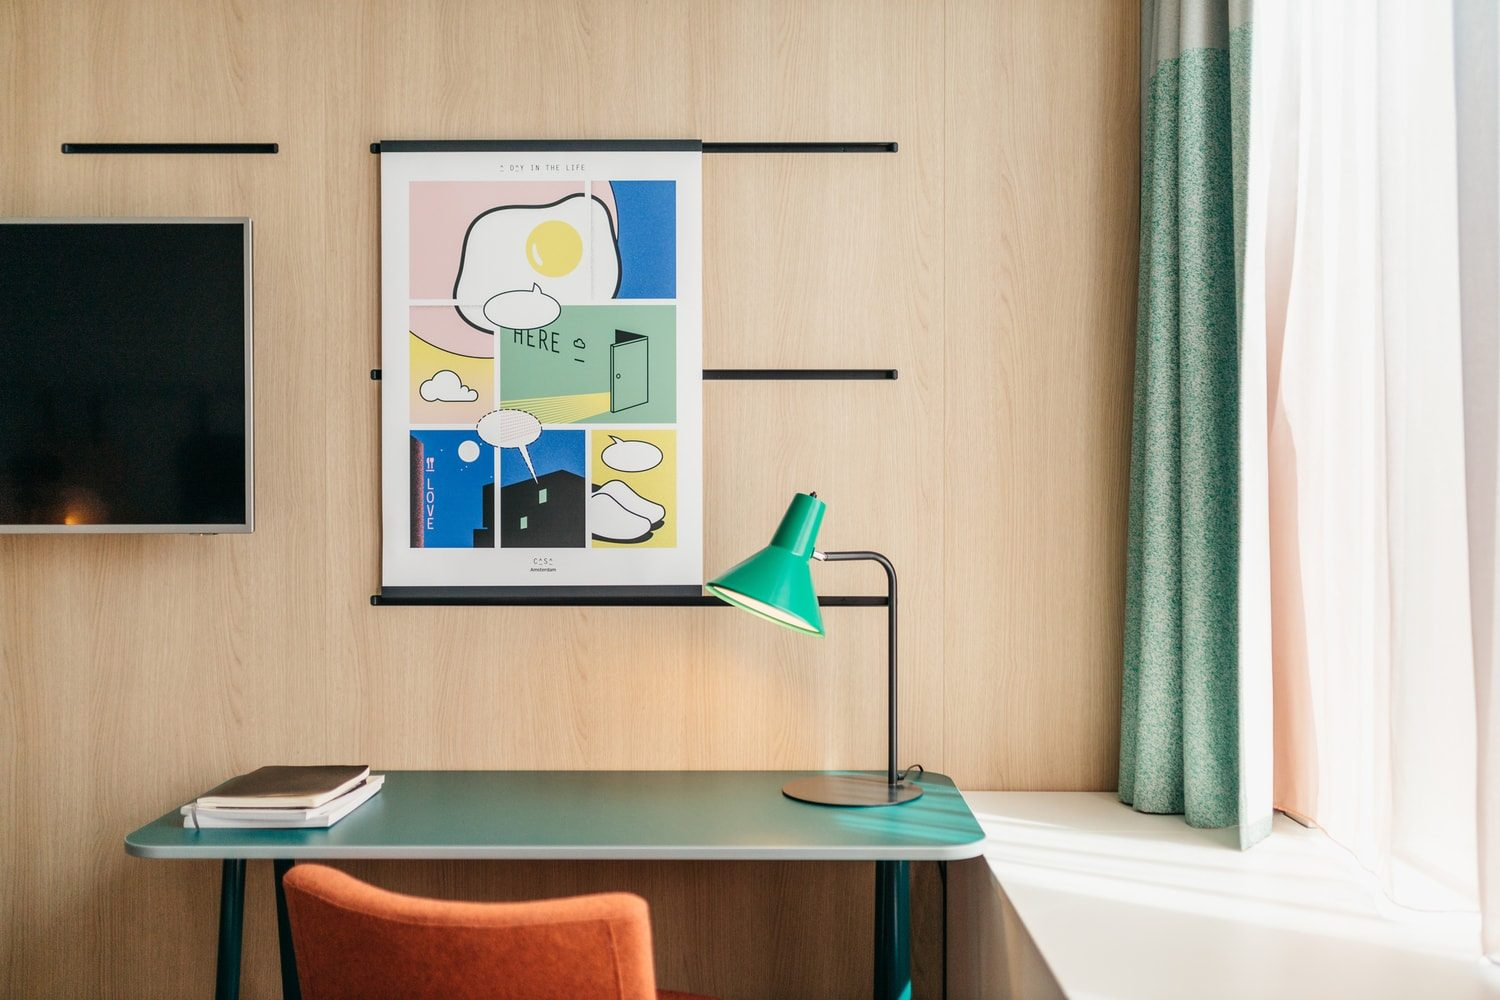 Casa_New-Rooms_Product-021